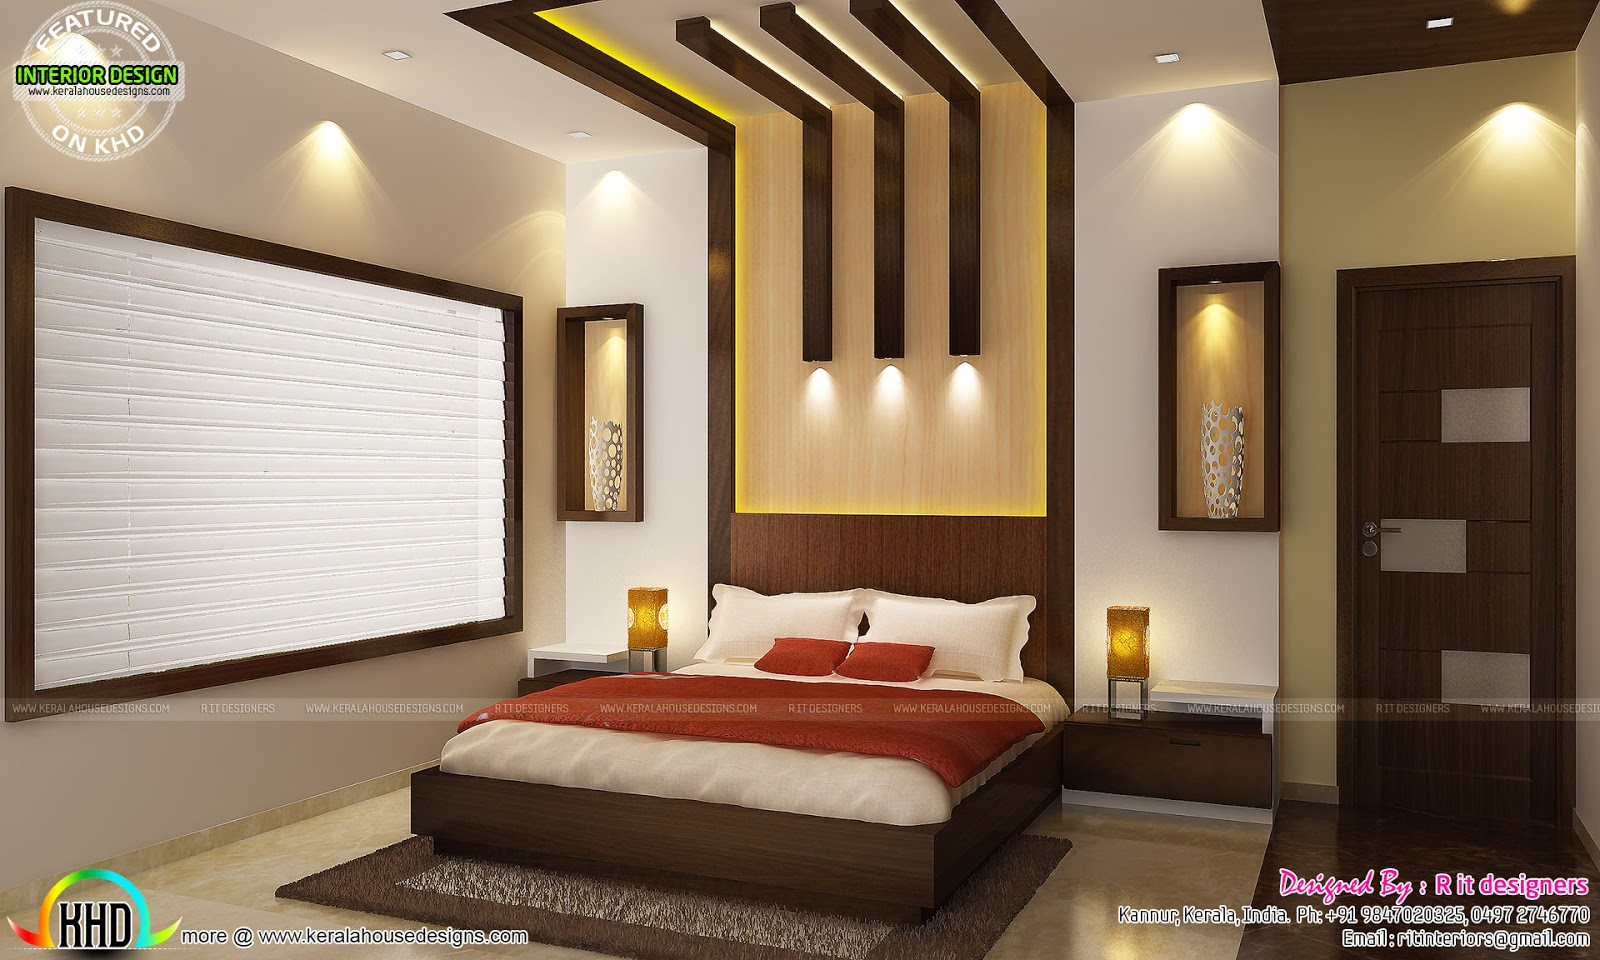 Interior Design For Bedroom Kitchen Living Bedroom Dining Interior Decor Kerala